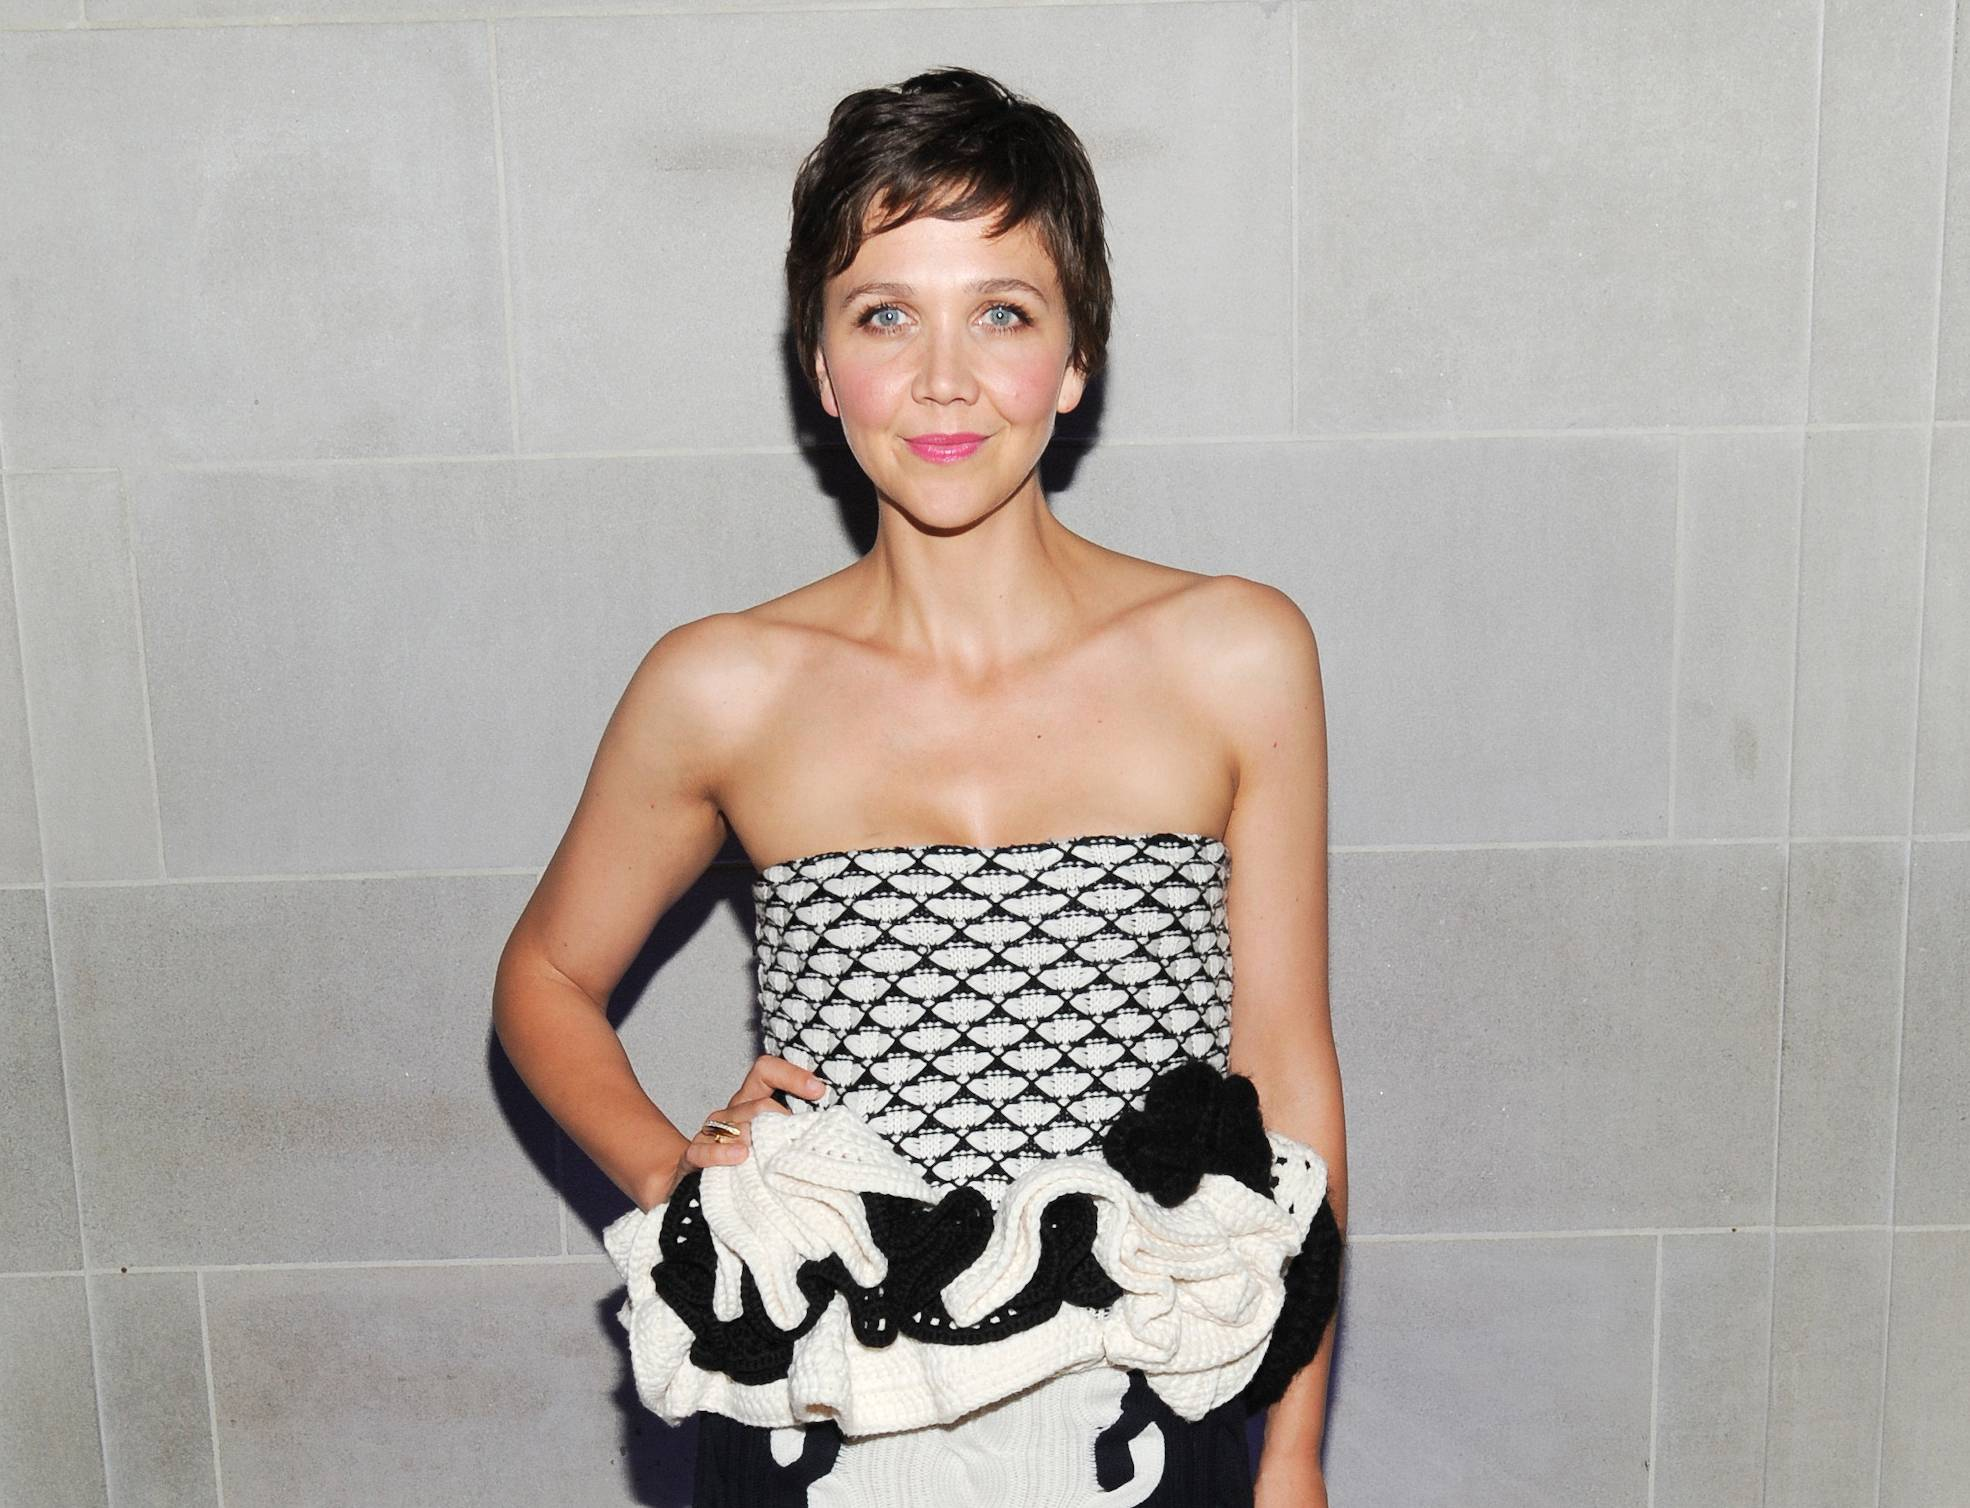 "Actress Maggie Gyllenhaal will make her Broadway debut this fall opposite Ewan McGregor in ""The Real Thing."" Roundabout Theatre Company said Tuesday that Gyllenhaal and McGregor will play illicit lovers in the revival of Tom Stoppard's play about relationships and fidelity."